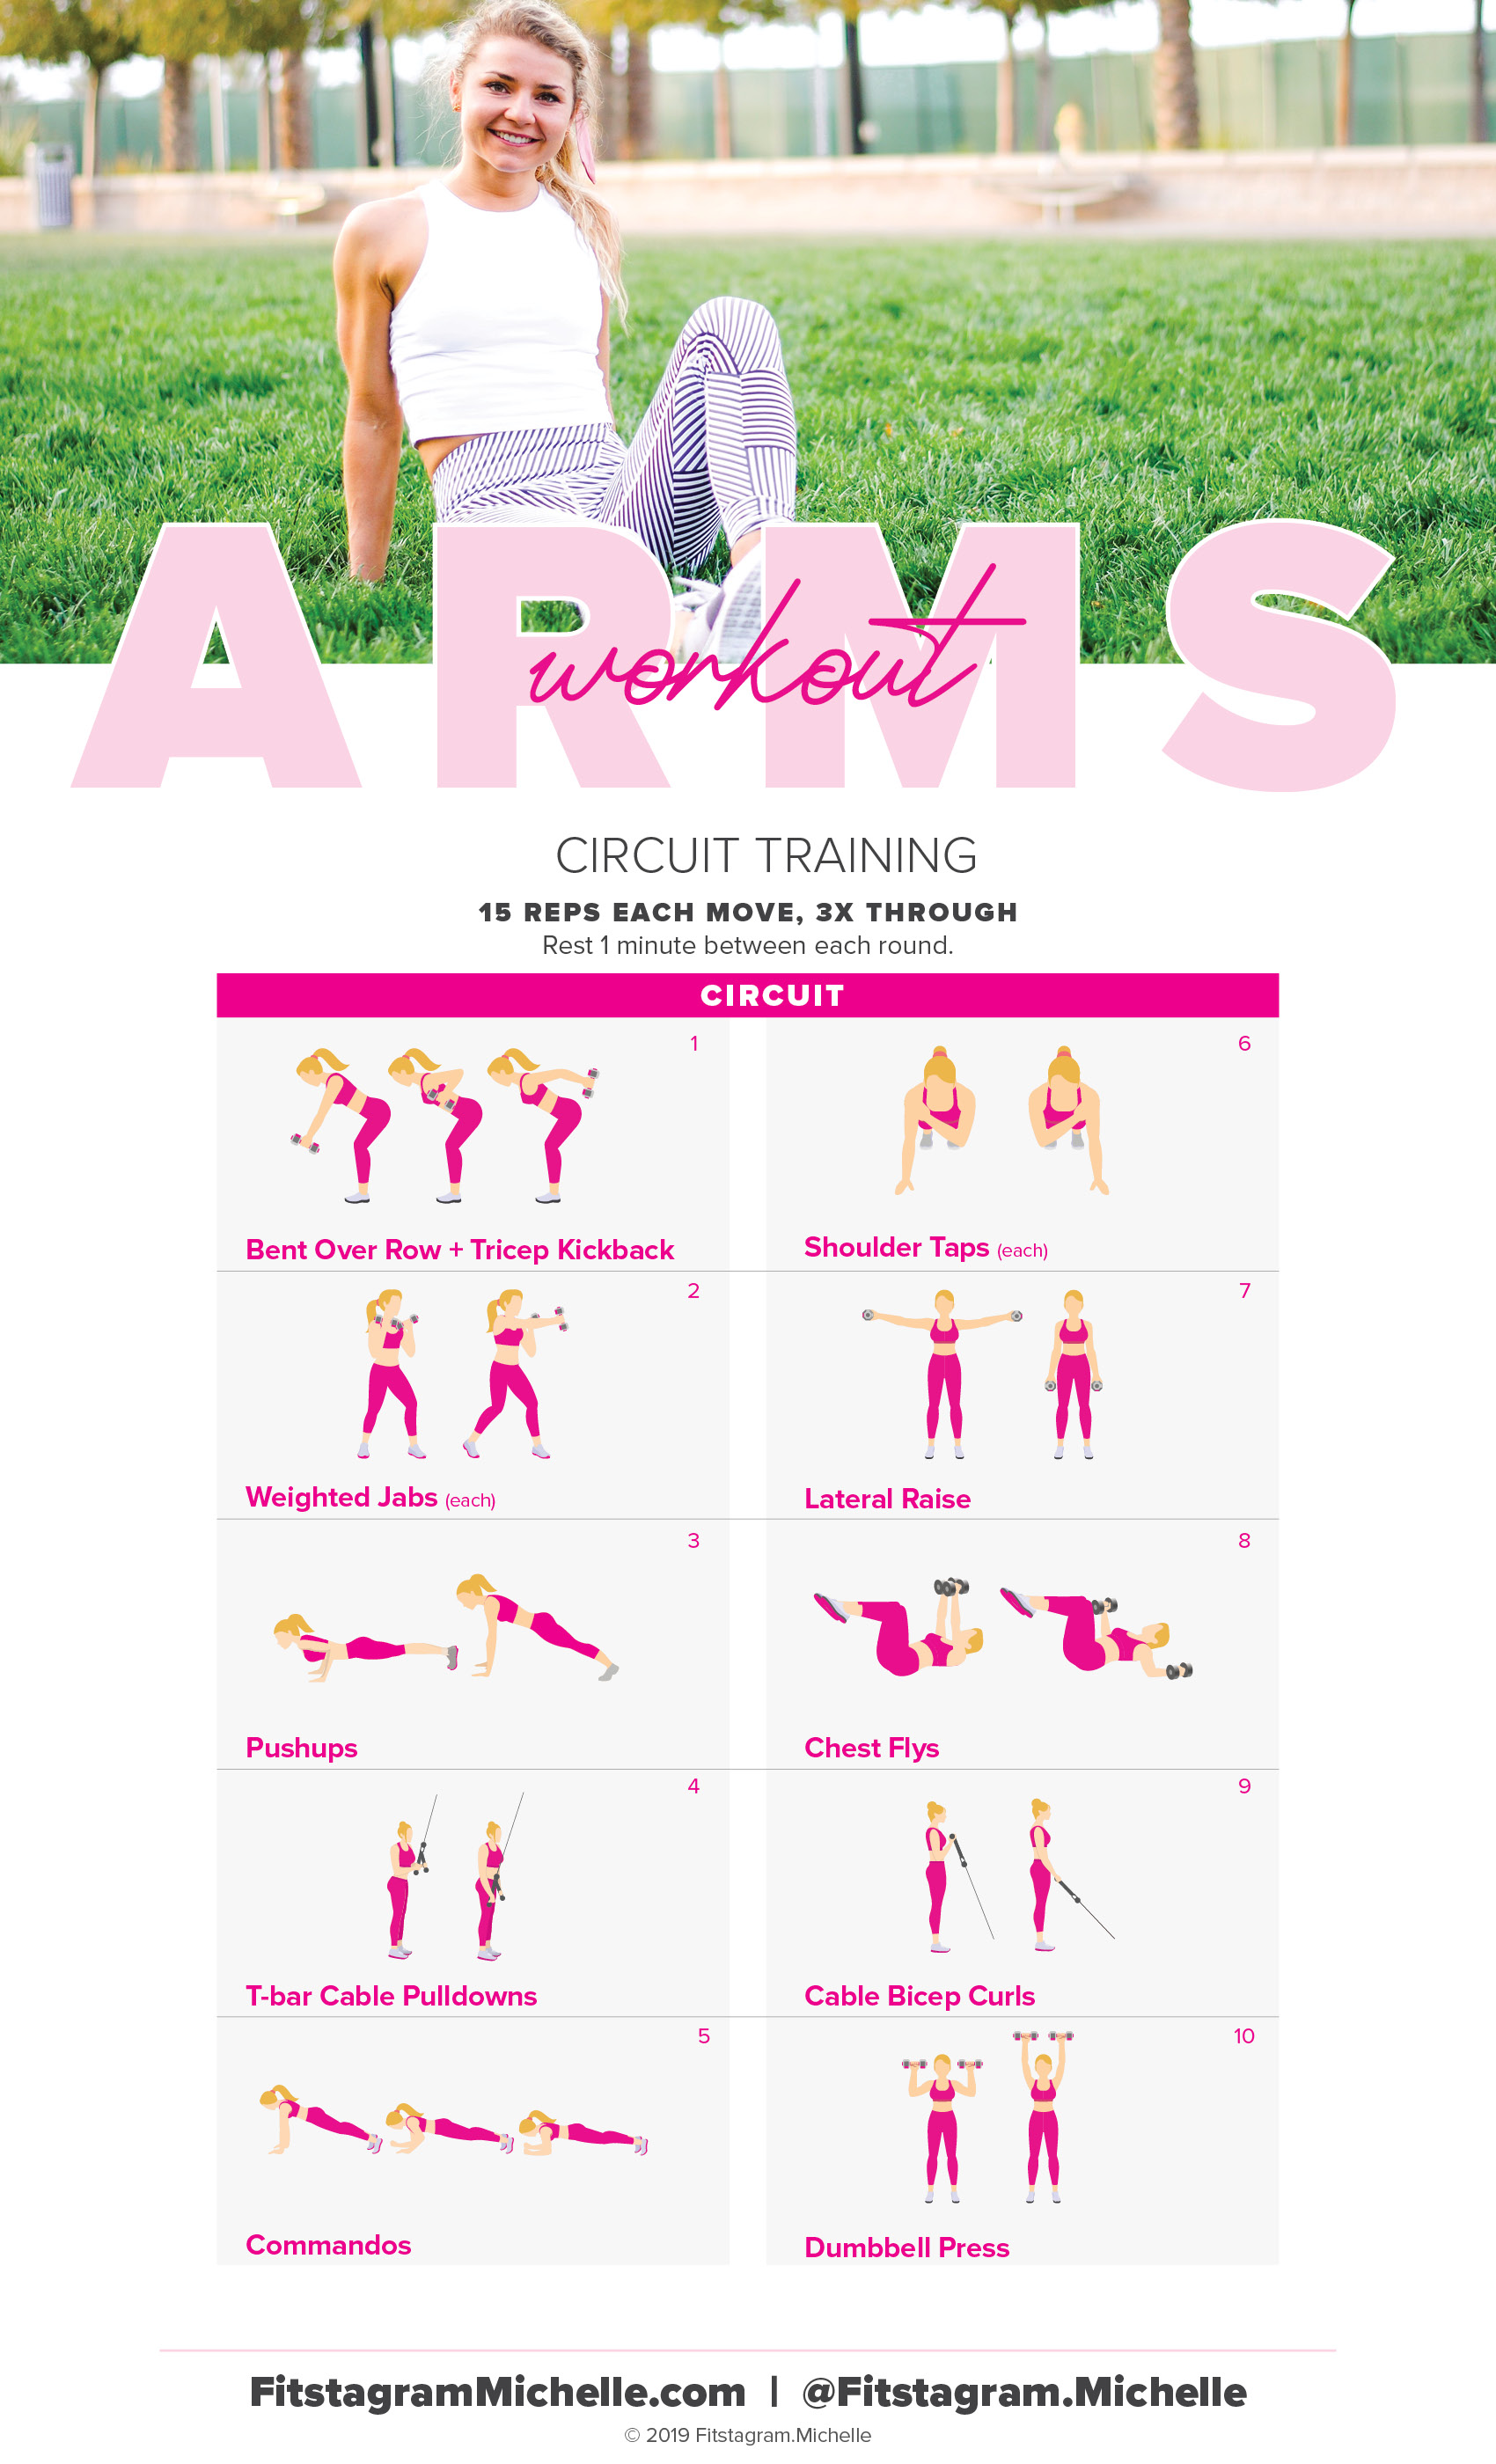 Get Toned arms with this workout for women. ten moves to tighten your arms and reveal lean gorgeous muscles.